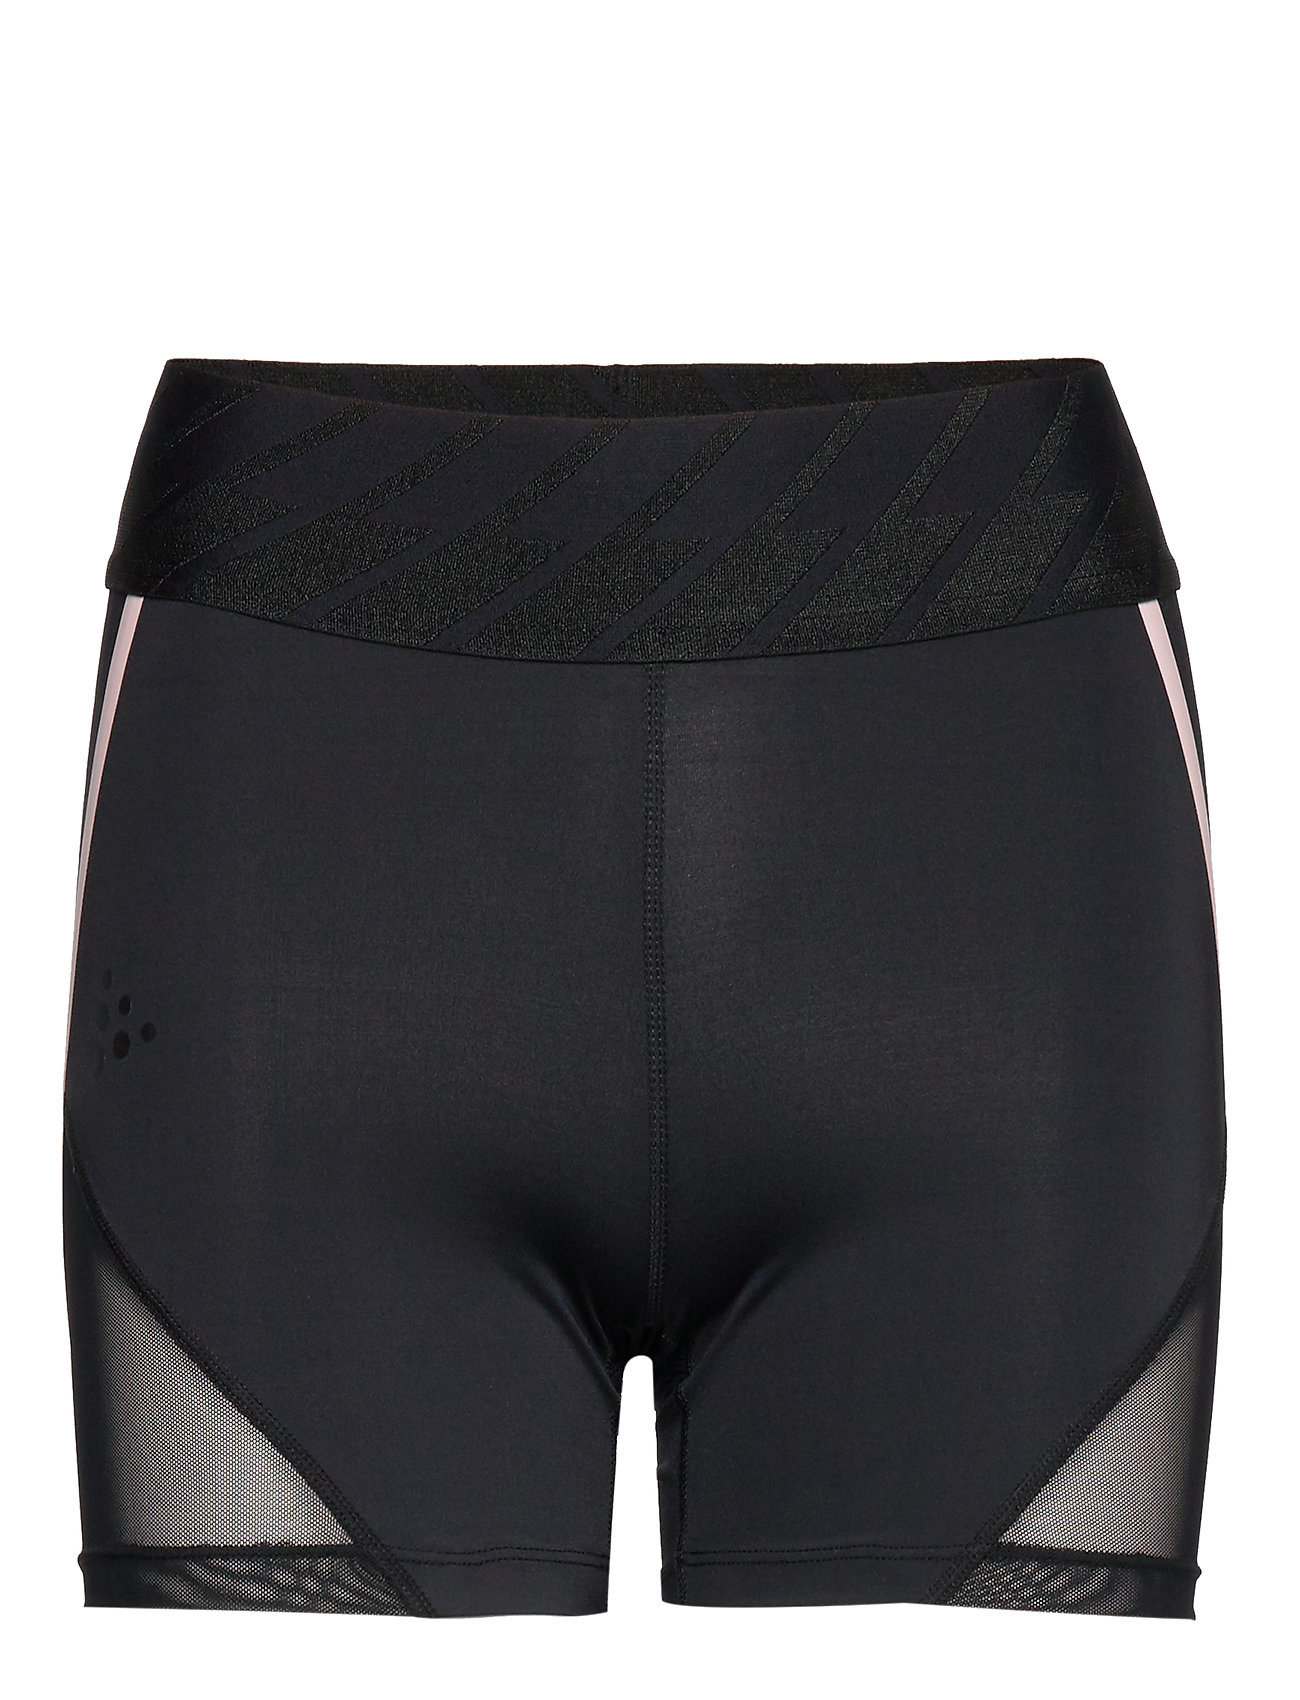 Craft UNTMD HOTPANTS W - BLACK/TOUCH